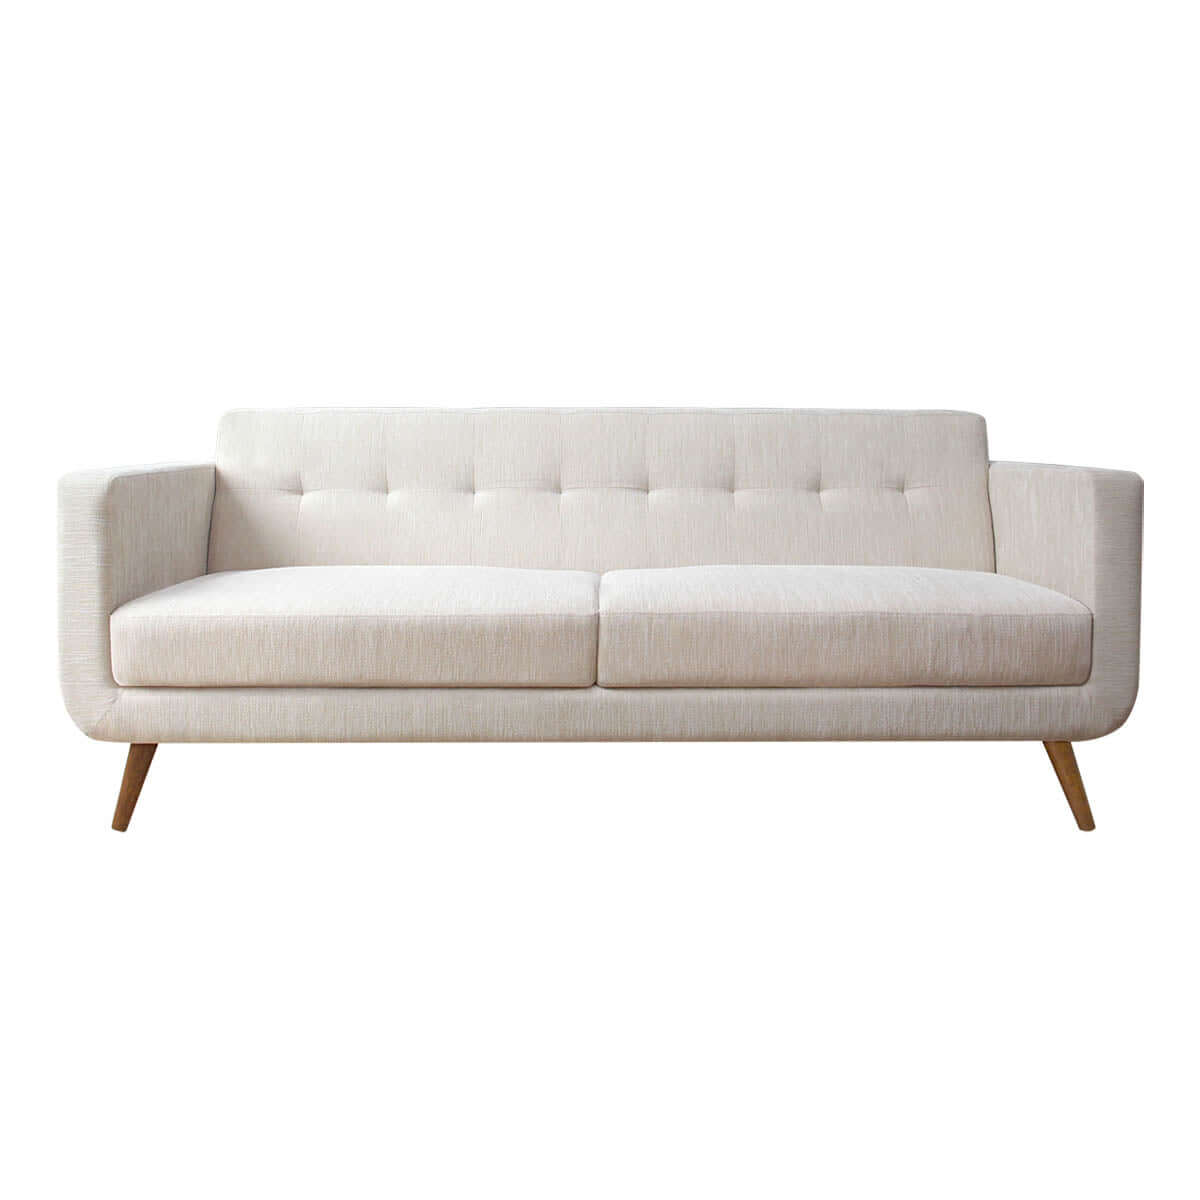 3 seat contemporary sofa